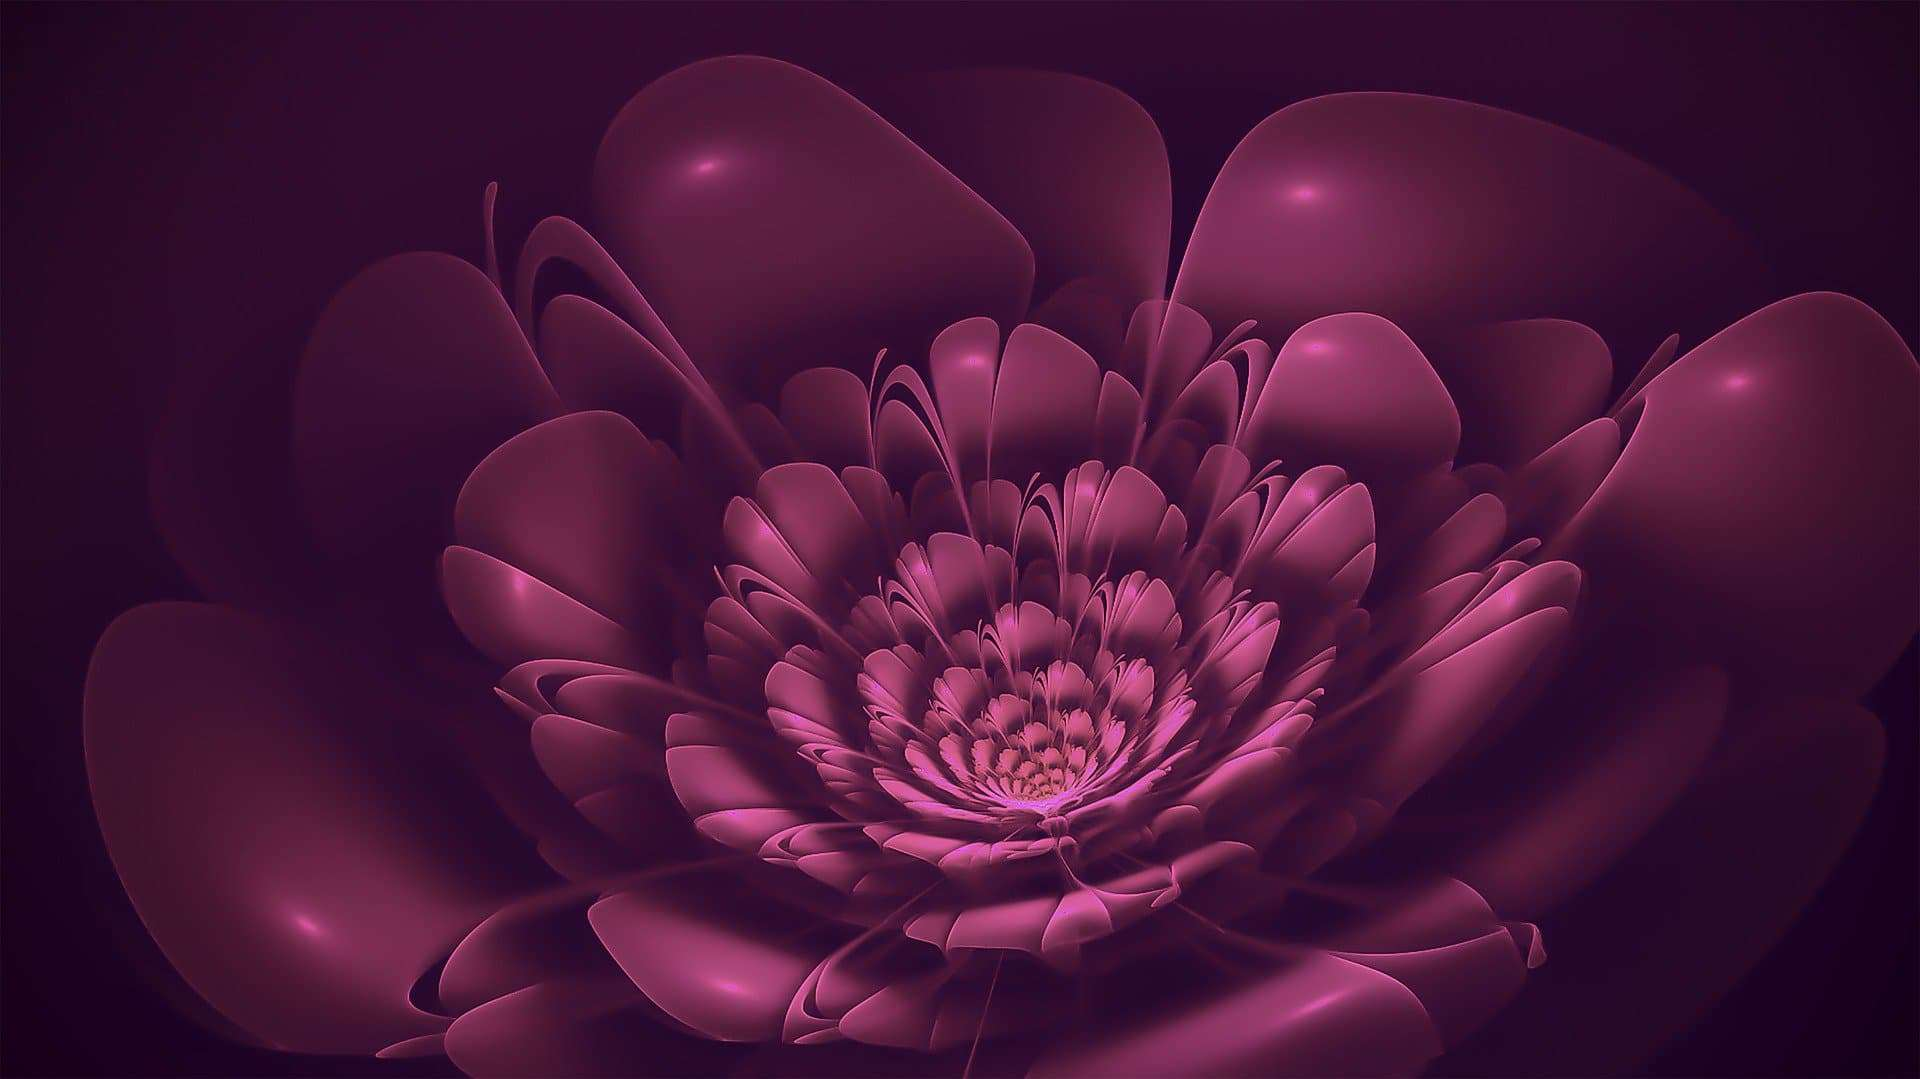 Flower Bloom https://pixabay.com/illustrations/fractal-blossom-flower-bloom-2109982/